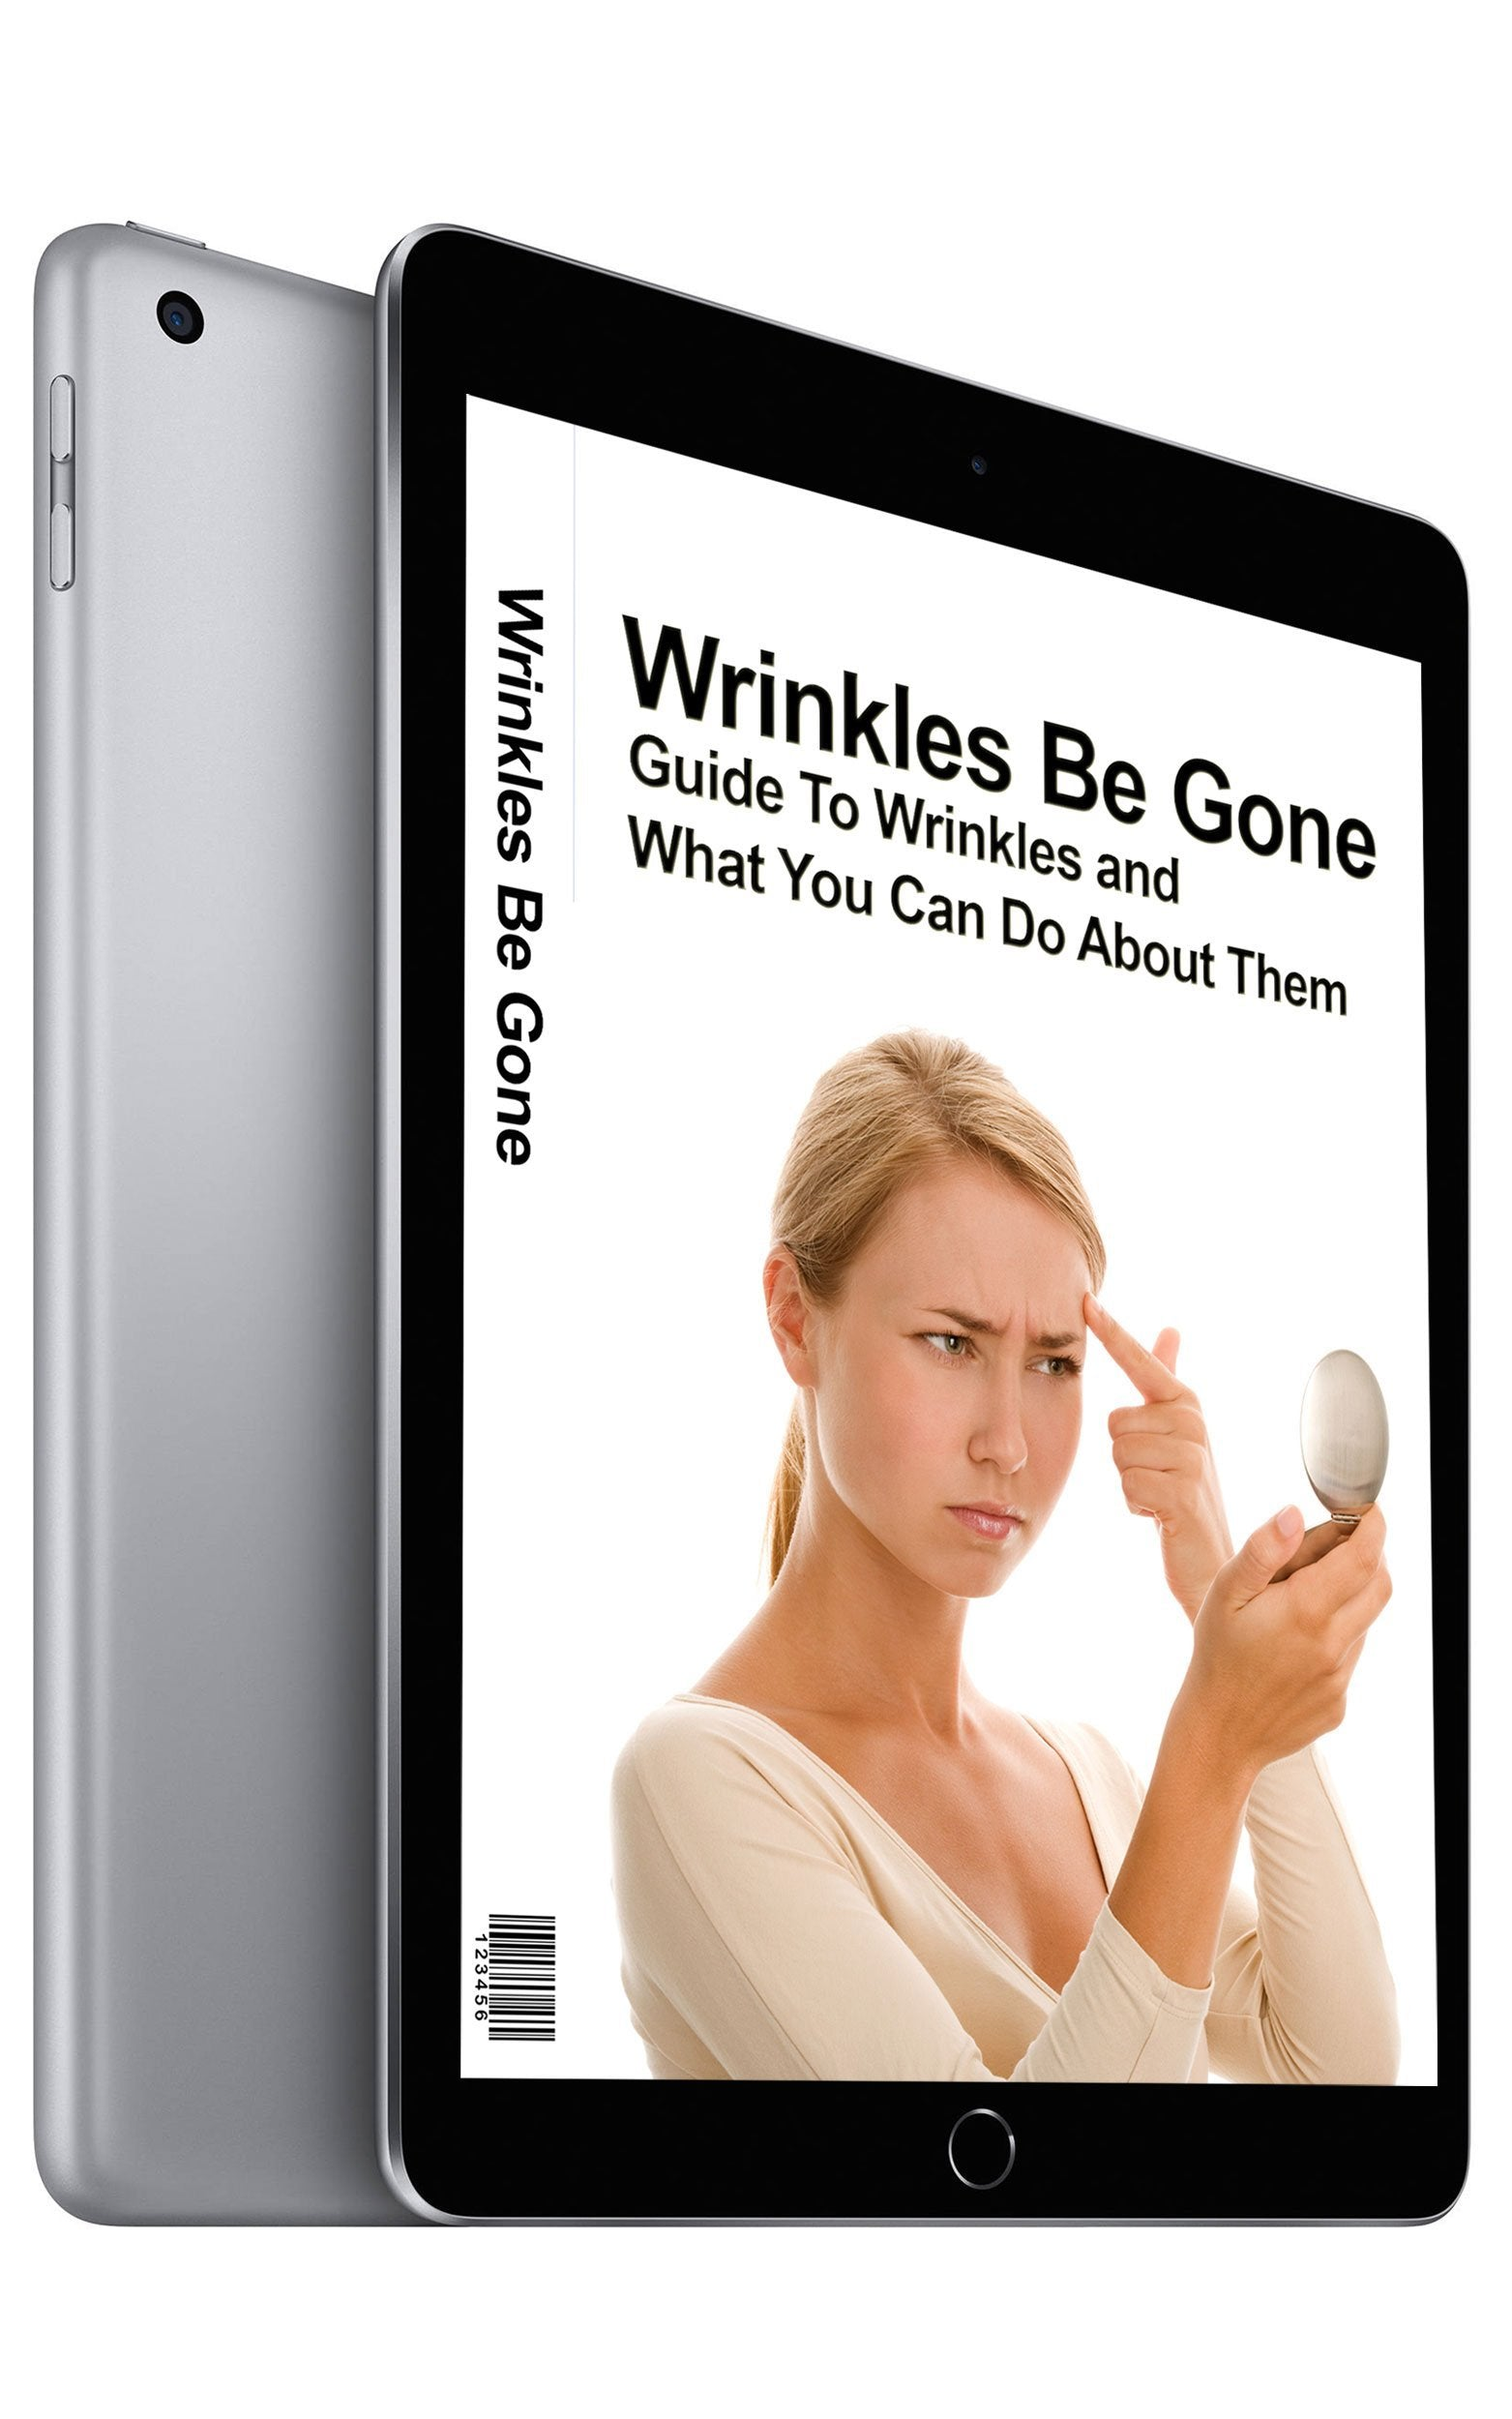 Wrinkles Be Gone: A Guide To Wrinkles and What You Can Do About Them (eBook)